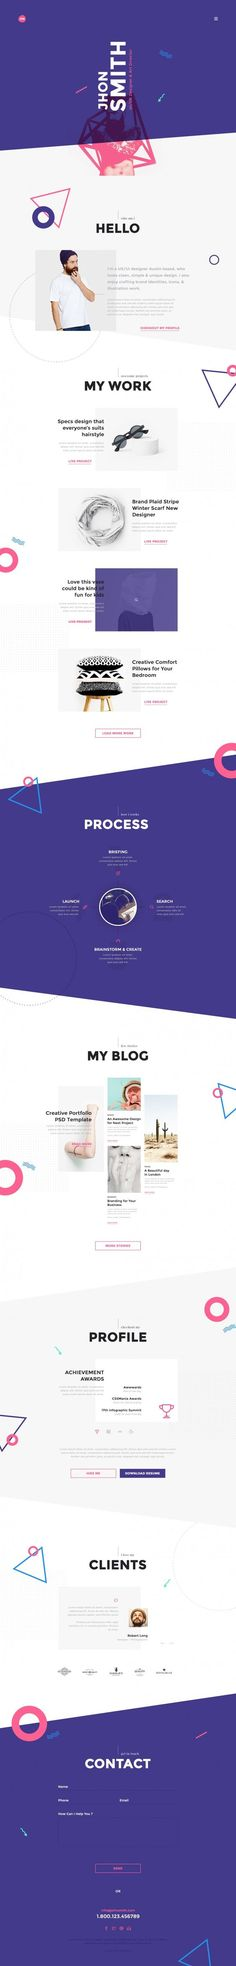 Me Creative Portfolio Web Design (Designer Unknown)                                                                                                                                                                                 More